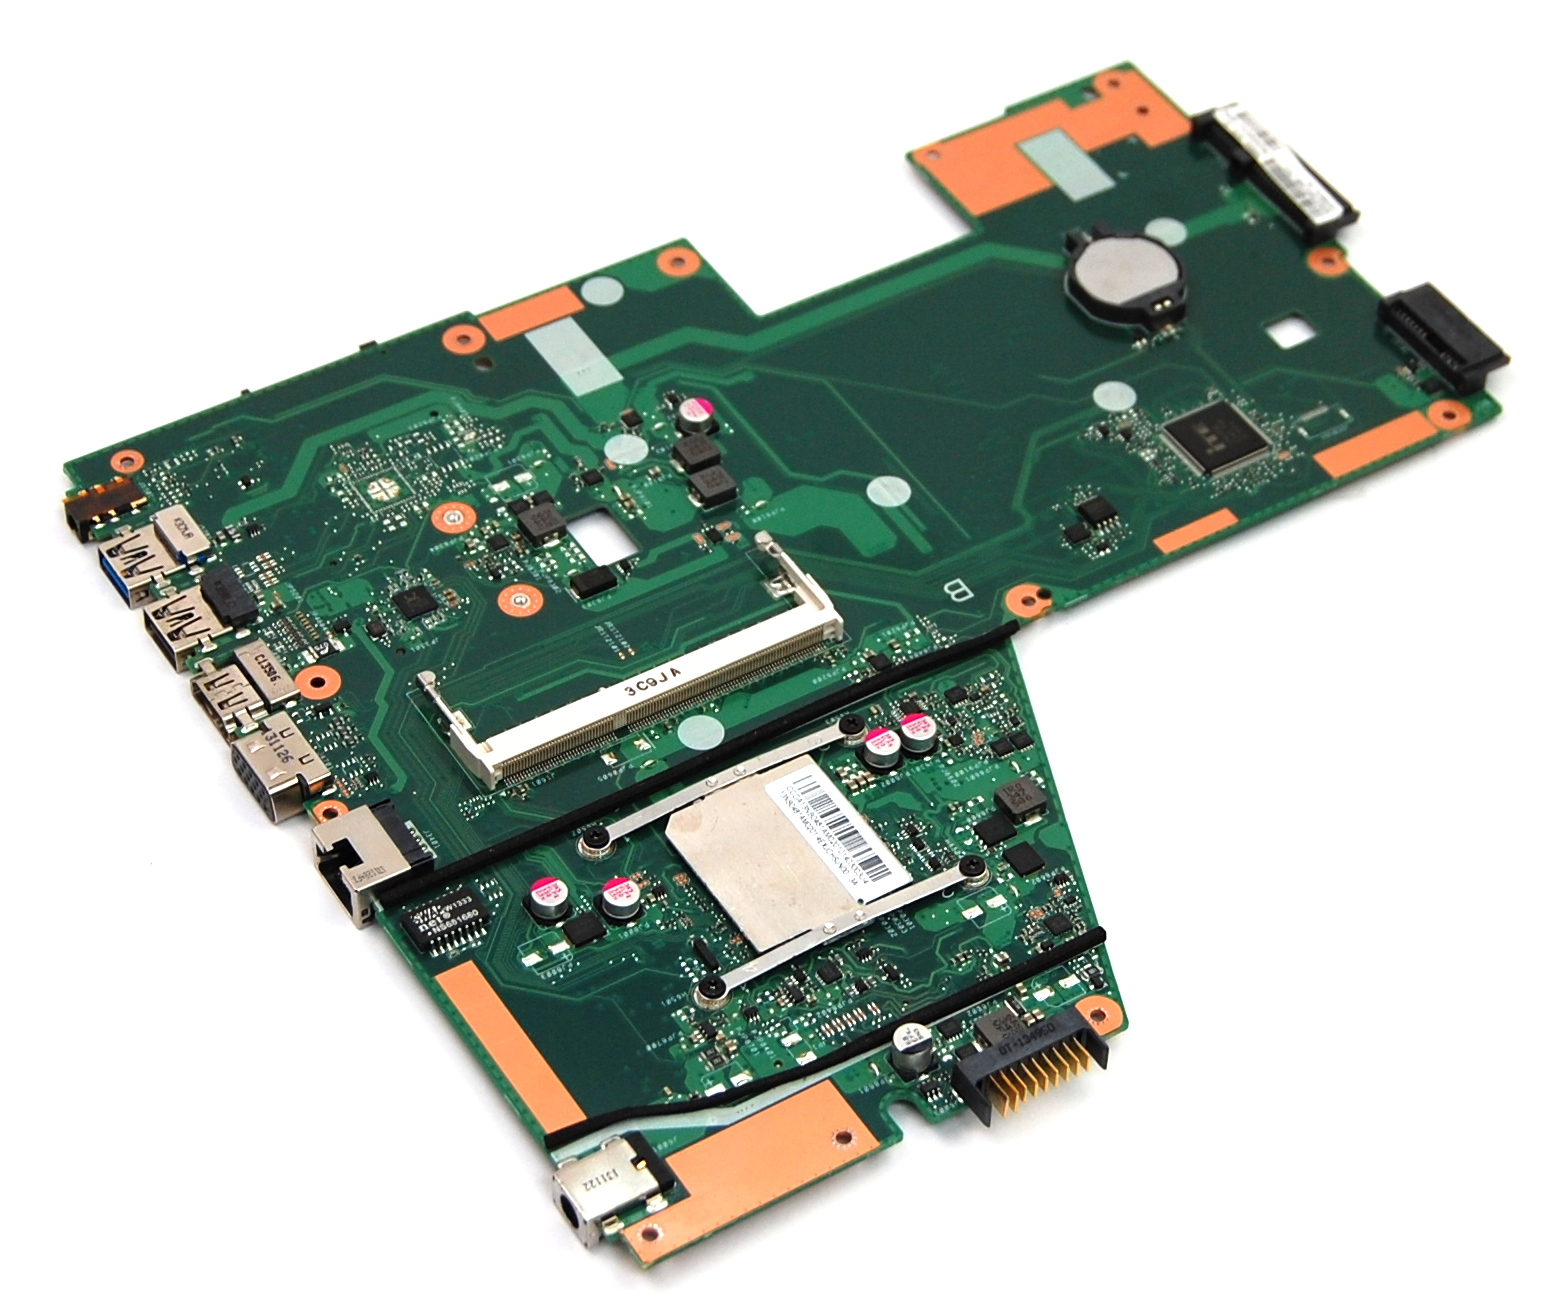 Asus 60NB0480-MB1501-204 X551MA Laptop Motherboard with Intel Celeron N2815 CPU